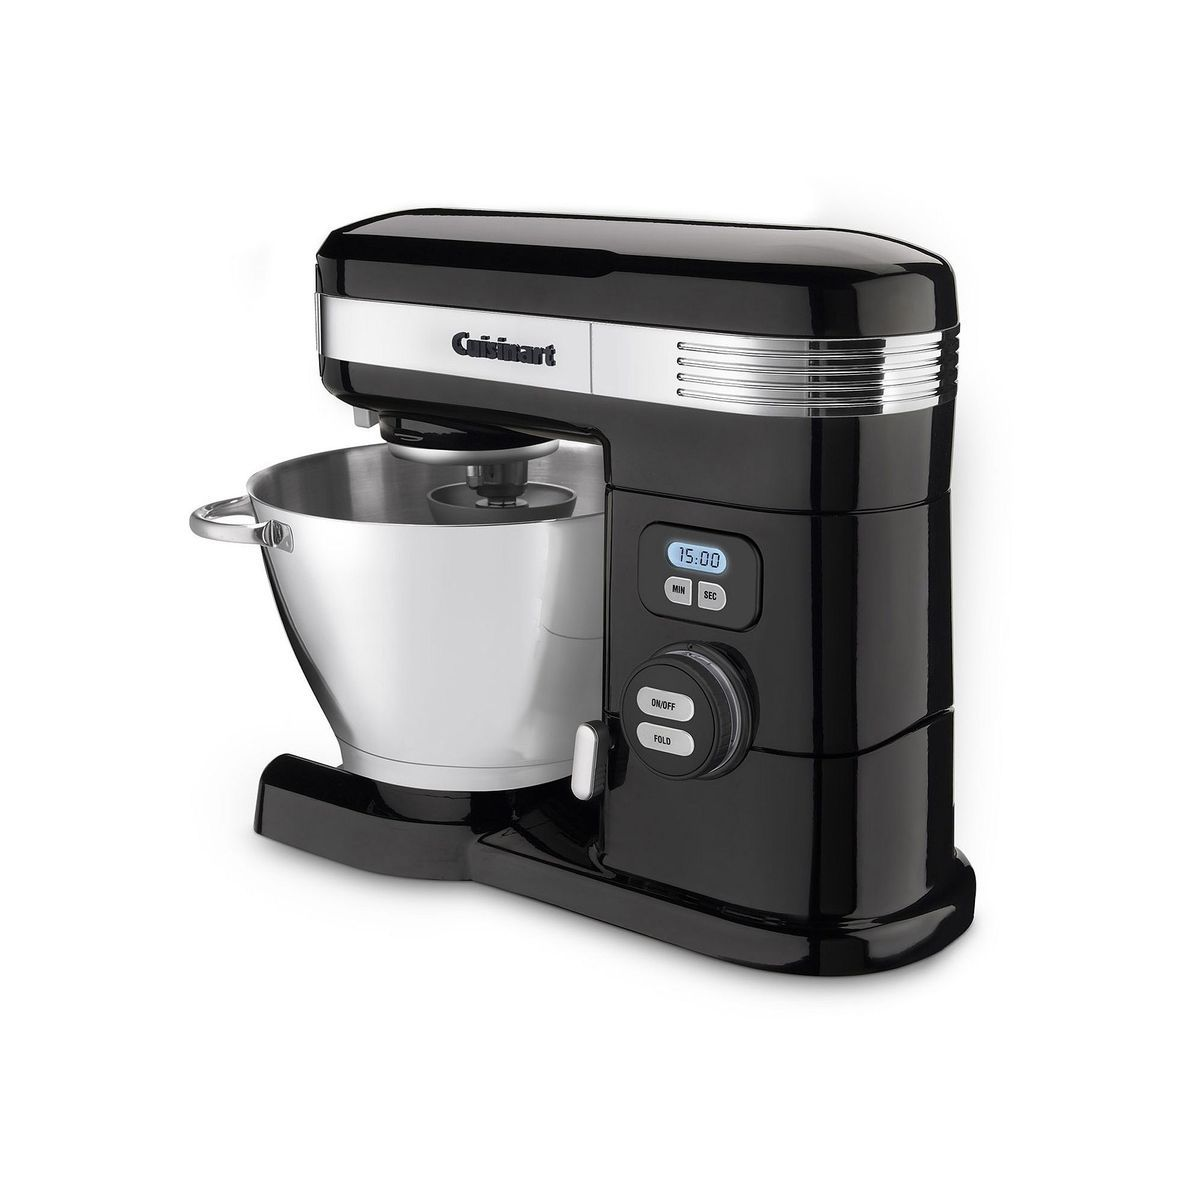 Cuisinart 5.5-qt. Stand Mixer, Black Find out how you can actually ...